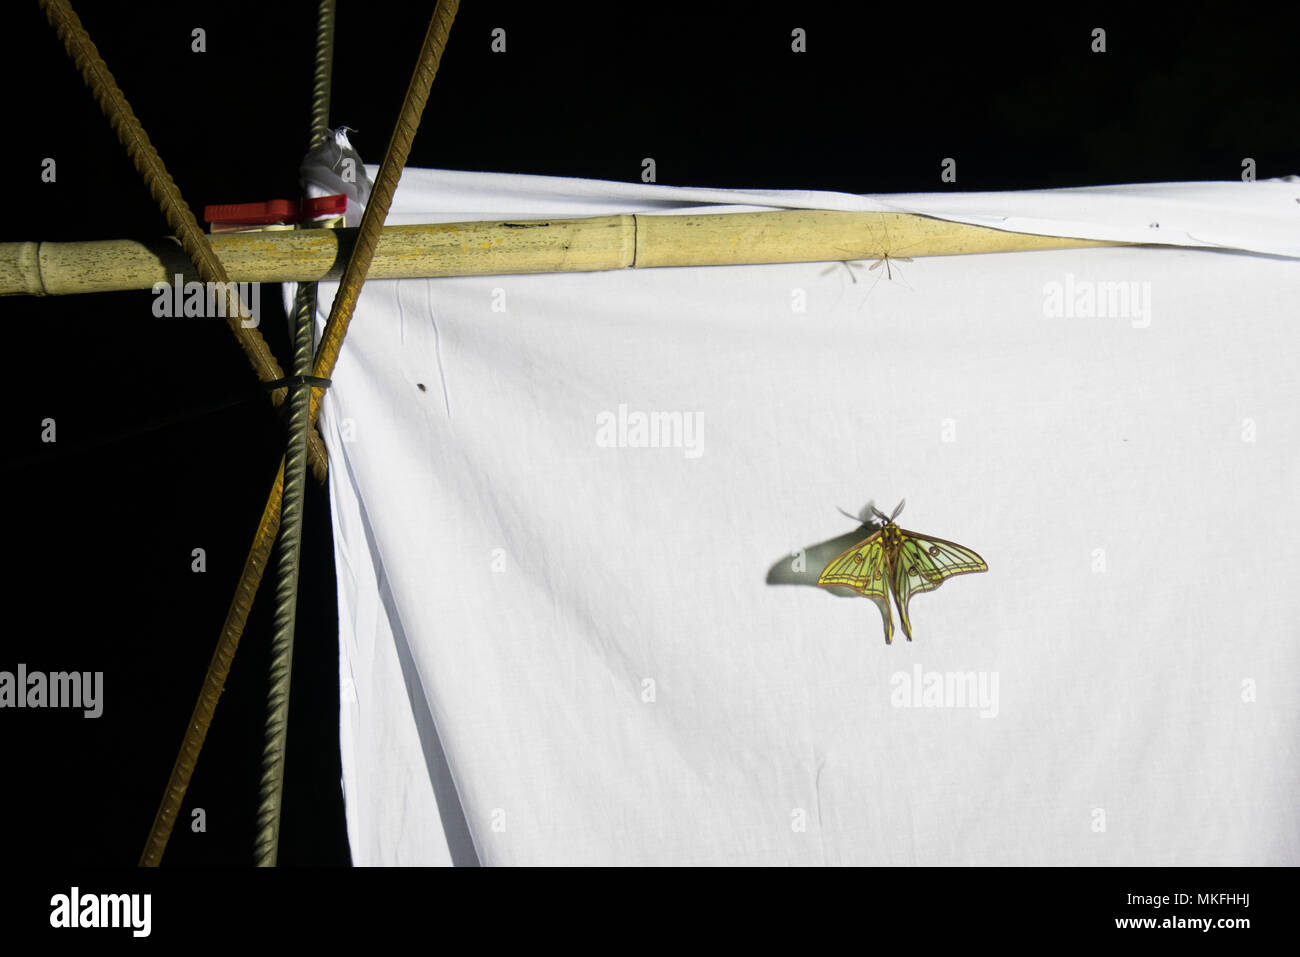 Spanish moon moth (Graellsia isabellae) on Insect trap at night, The Ports Natural Park, Terres de L'Ebre, Tarragona, Catalonia, Spain, Europe Stock Photo